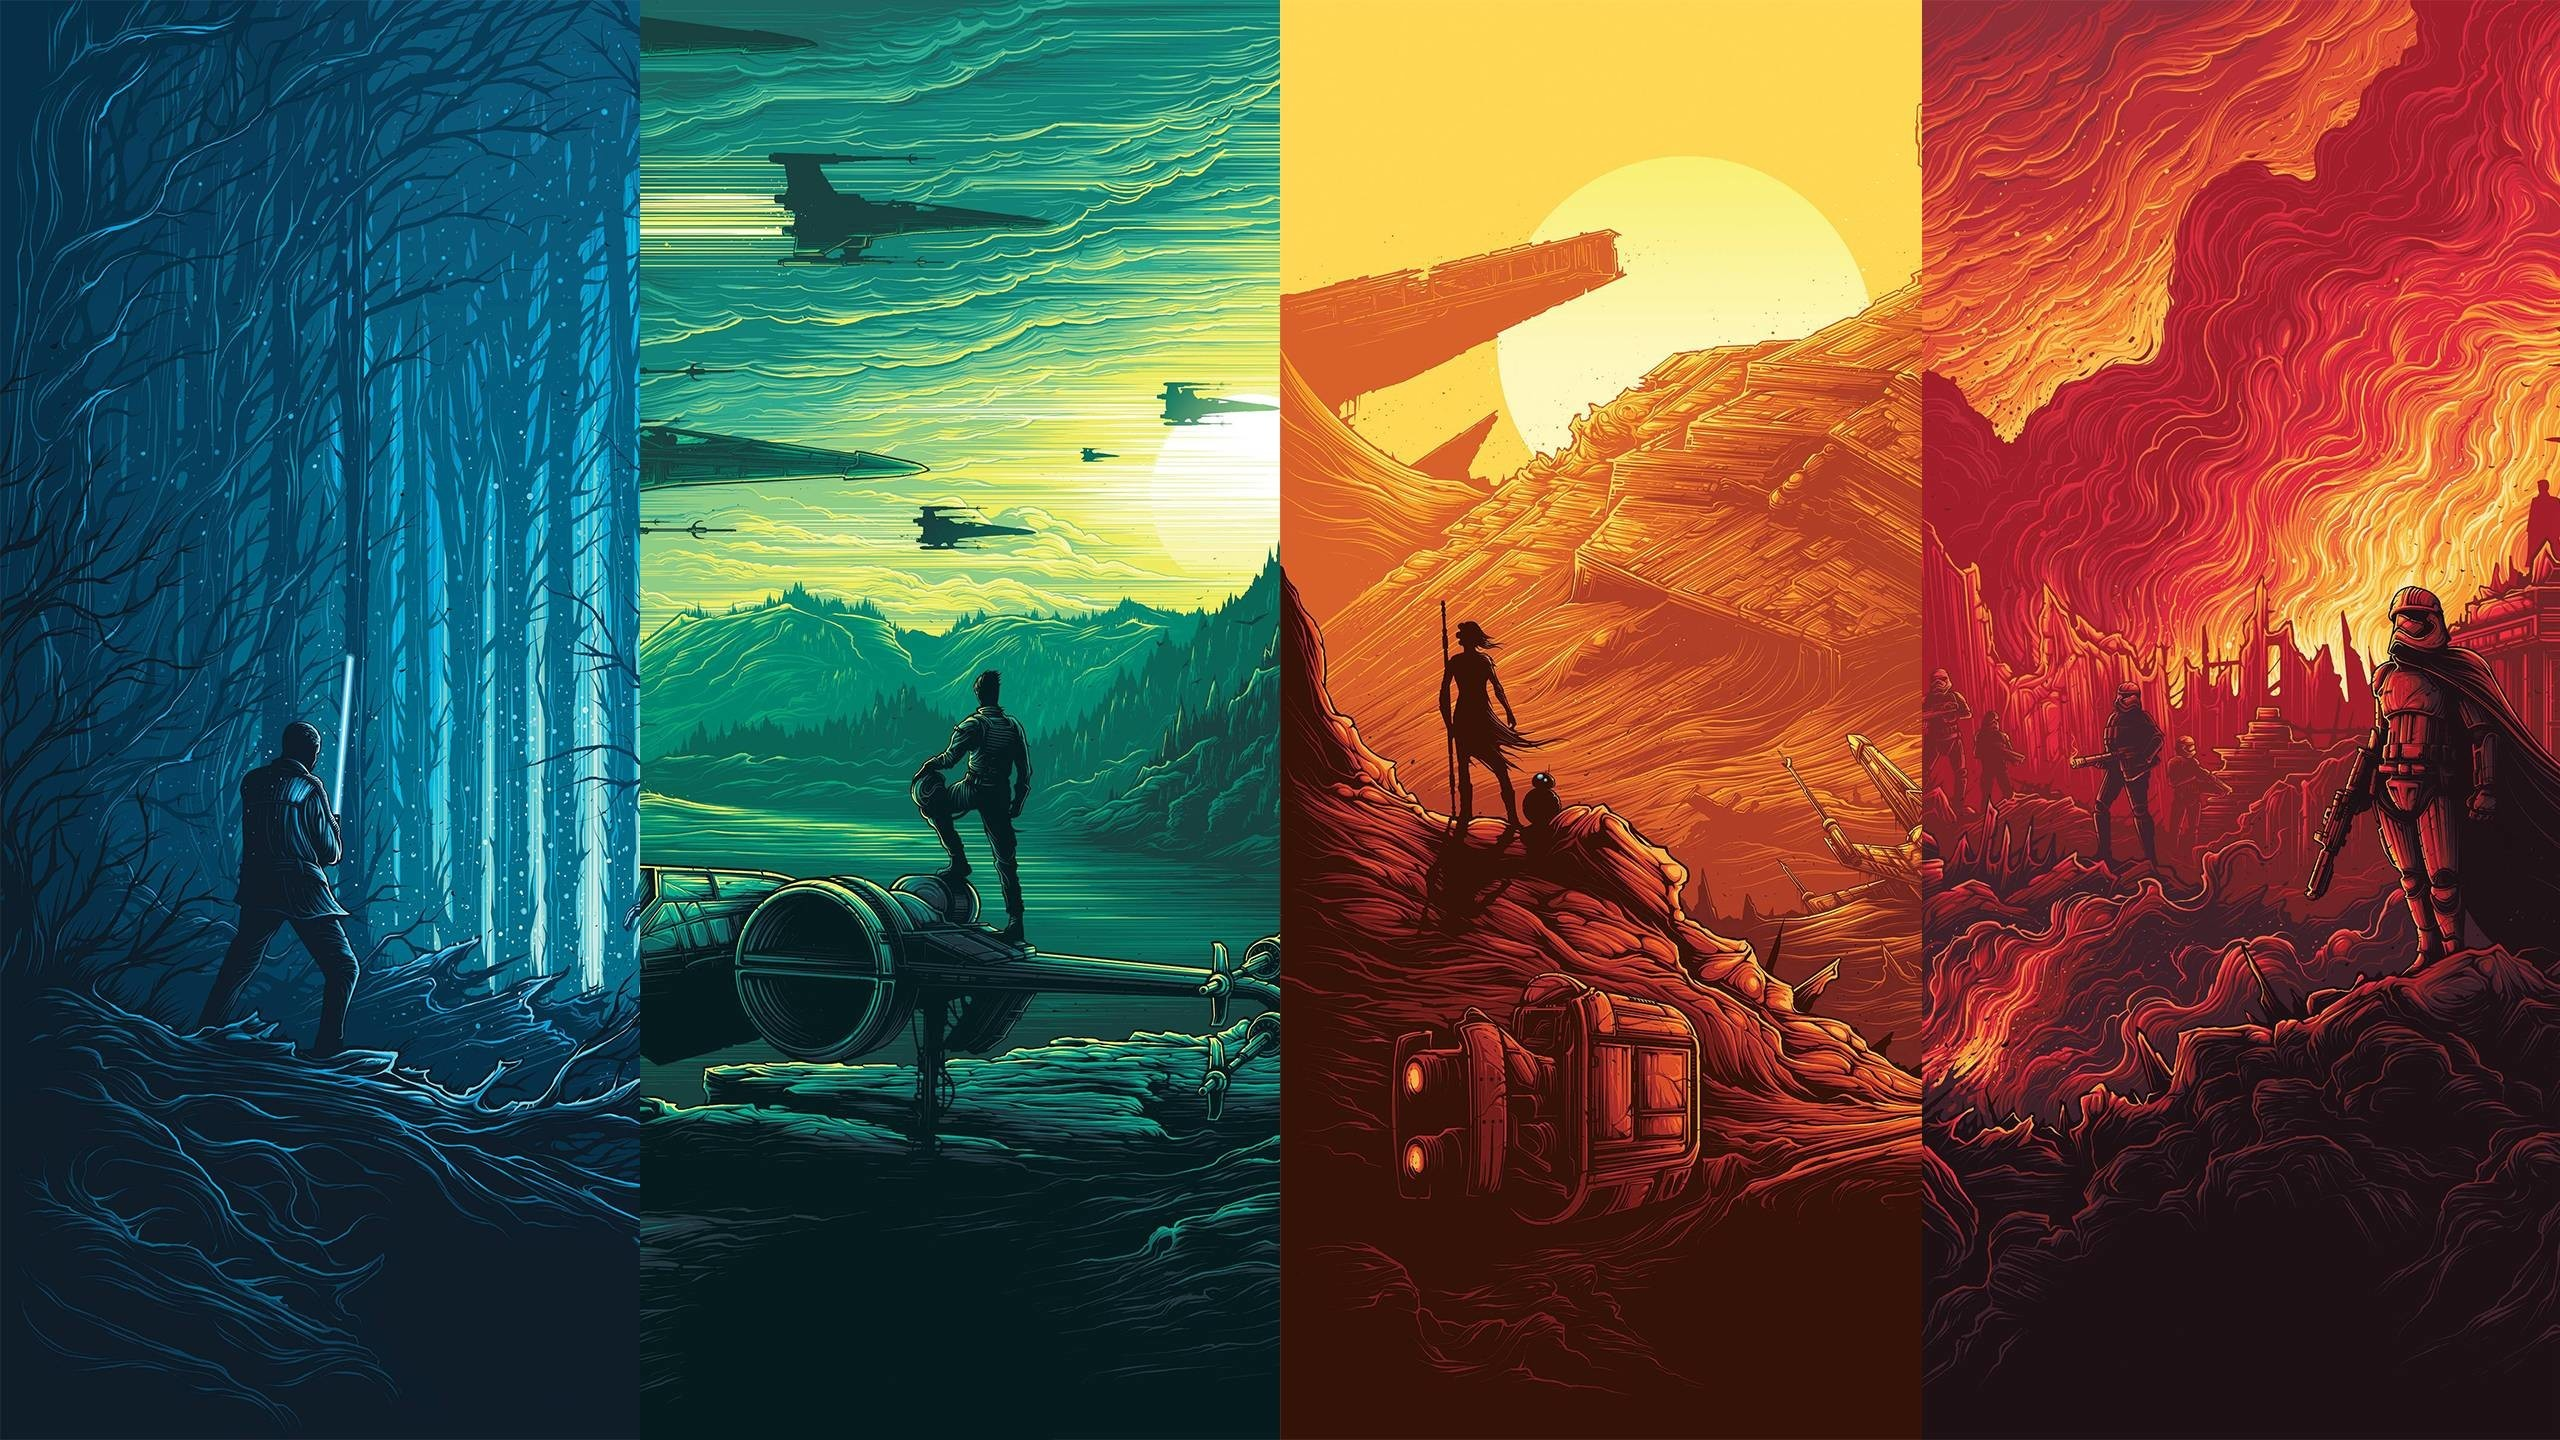 Star Wars Wallpapers 2560x1440 88 Background Pictures